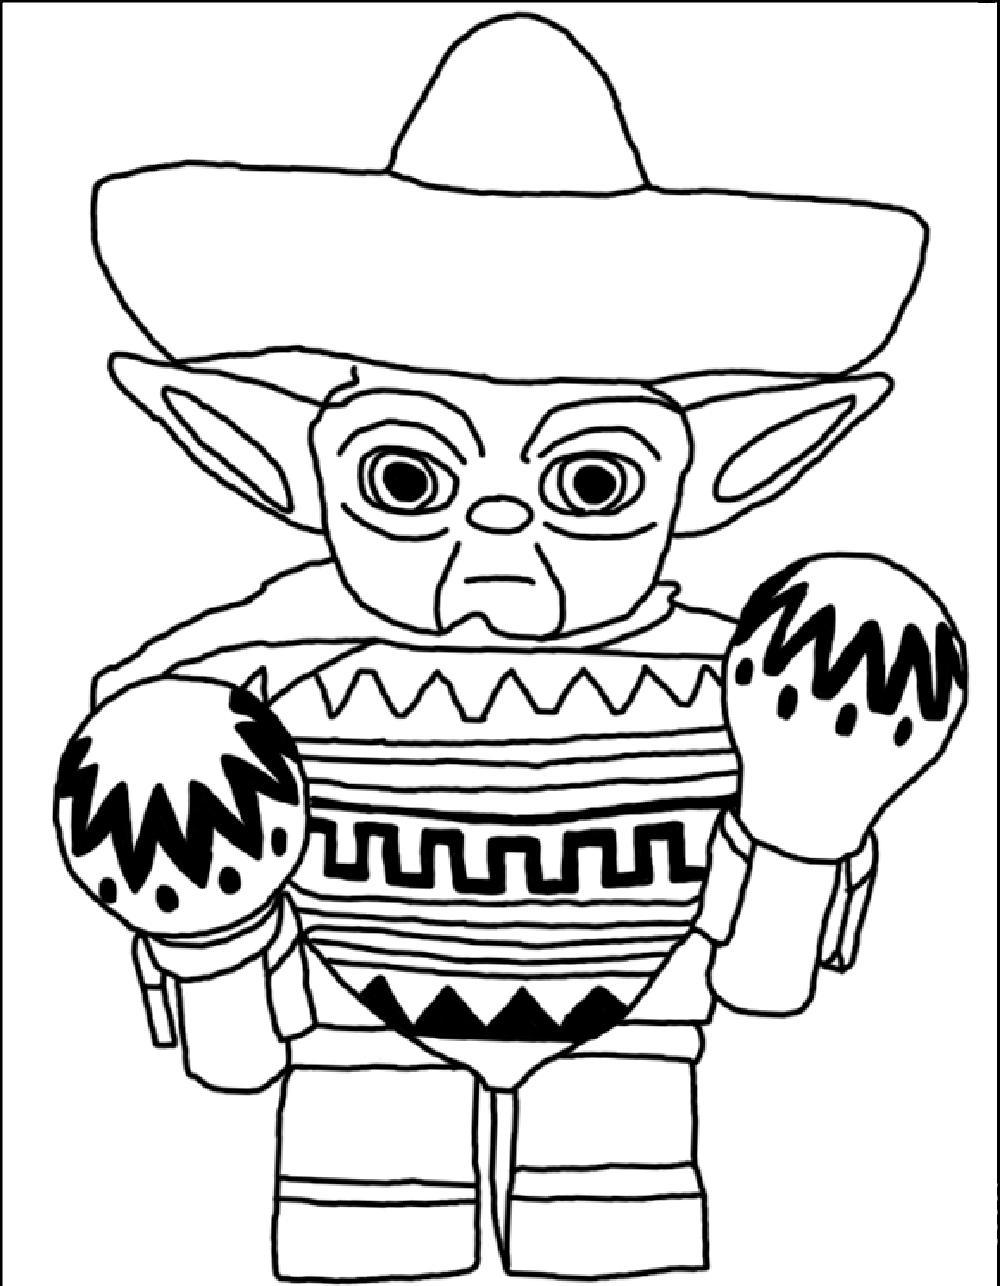 lego star wars pictures to colour get this free lego star wars coloring pages to print 89529 pictures to wars star lego colour